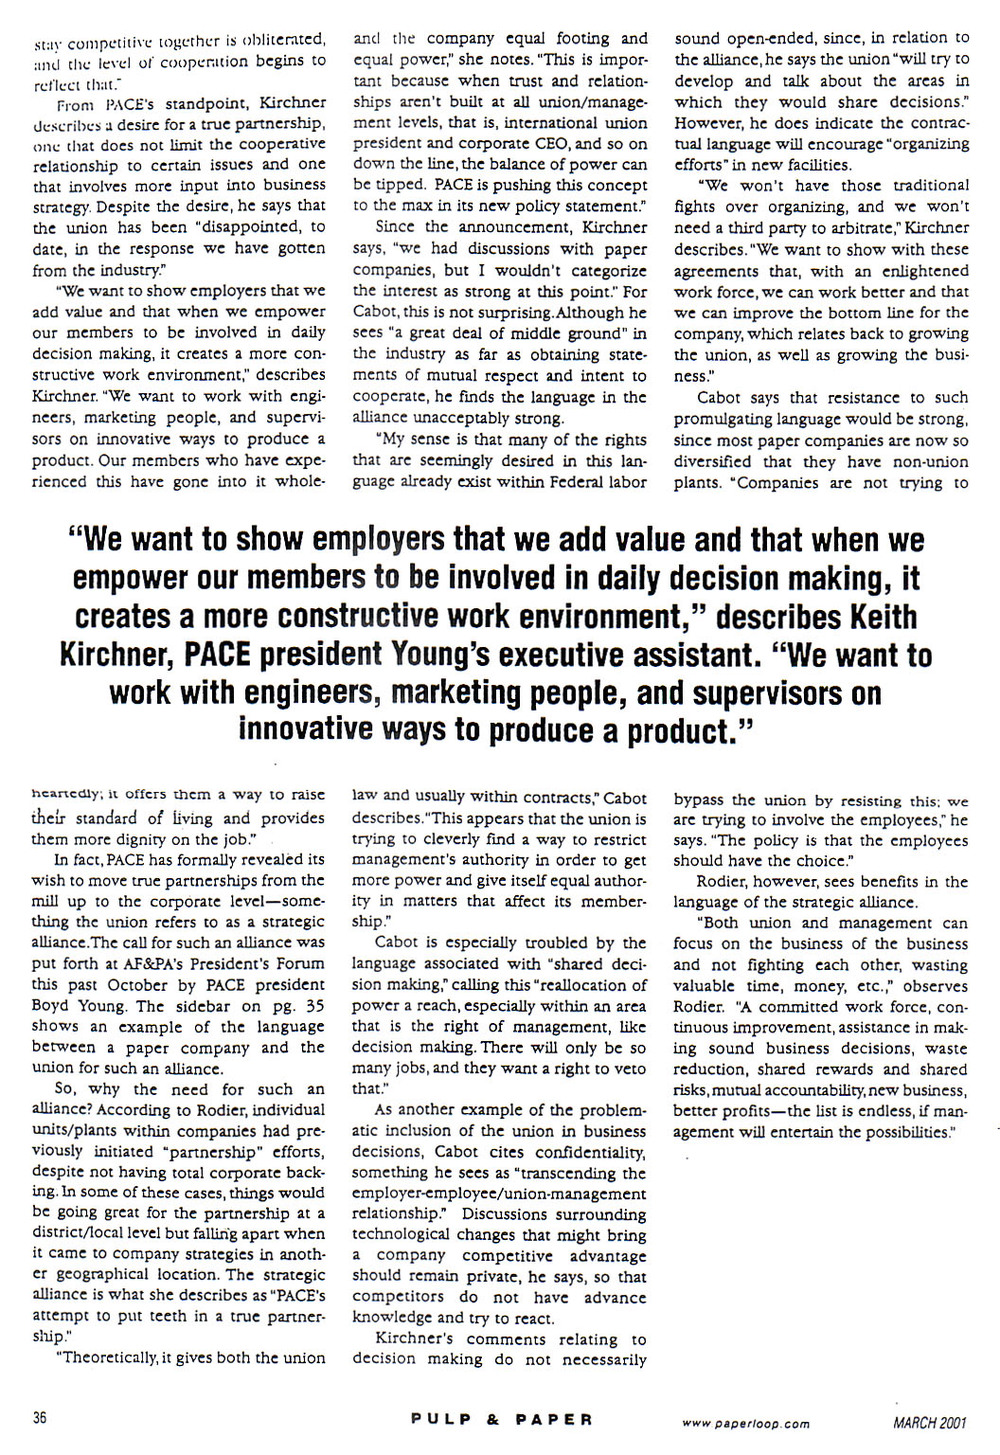 pulp & paper-march 2001-labormanagement build better relations driven by globalization, profitability concerns  page 4.jpg